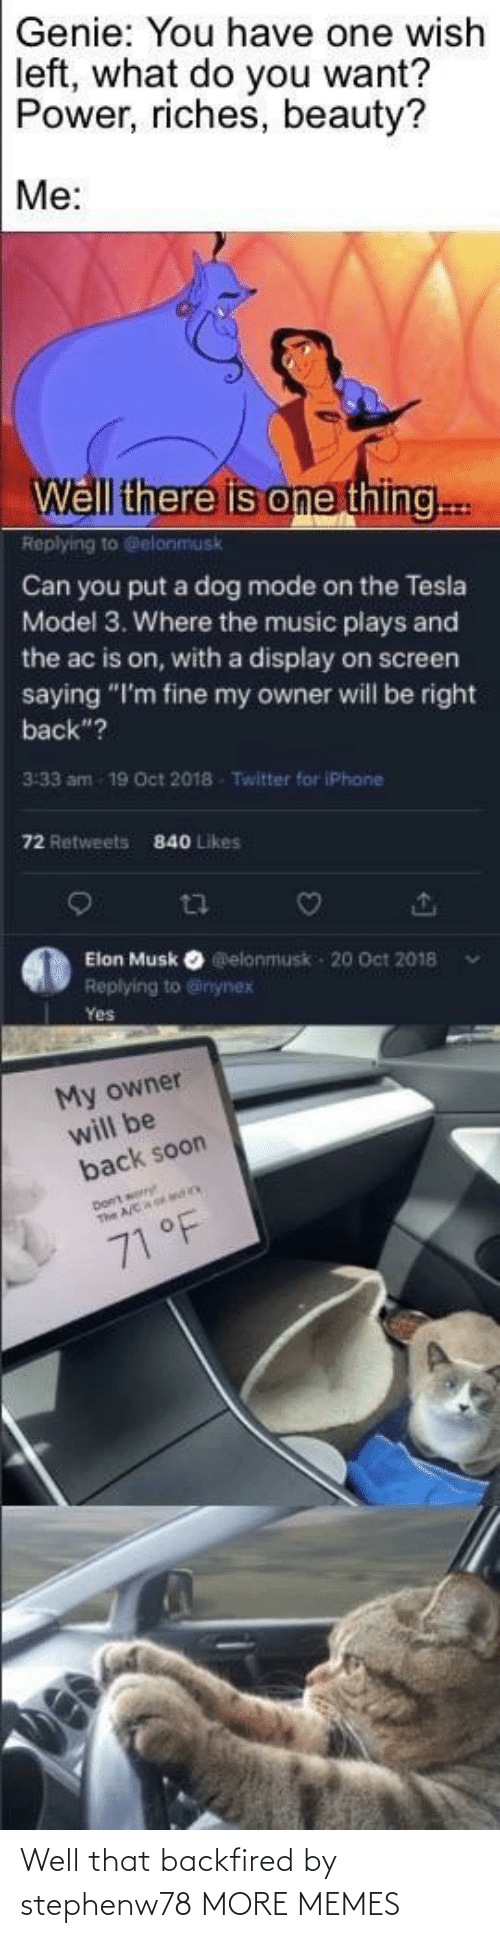 "Where: Genie: You have one wish  left, what do you want?  Power, riches, beauty?  Me:  Well there is one thing..  Replying to Gelonmusk  Can you put a dog mode on the Tesla  Model 3. Where the music plays and  the ac is on, with a display on screen  saying ""I'm fine my owner will be right  back""?  3:33 am  19 Oct 2018  Twitter for iPhane  72 Retweets  840 Likes  Elon Musk O elonmusk - 20 Oct 2018  Replying to @inynex  Yes  My owner  will be  back soon  71 °F Well that backfired by stephenw78 MORE MEMES"